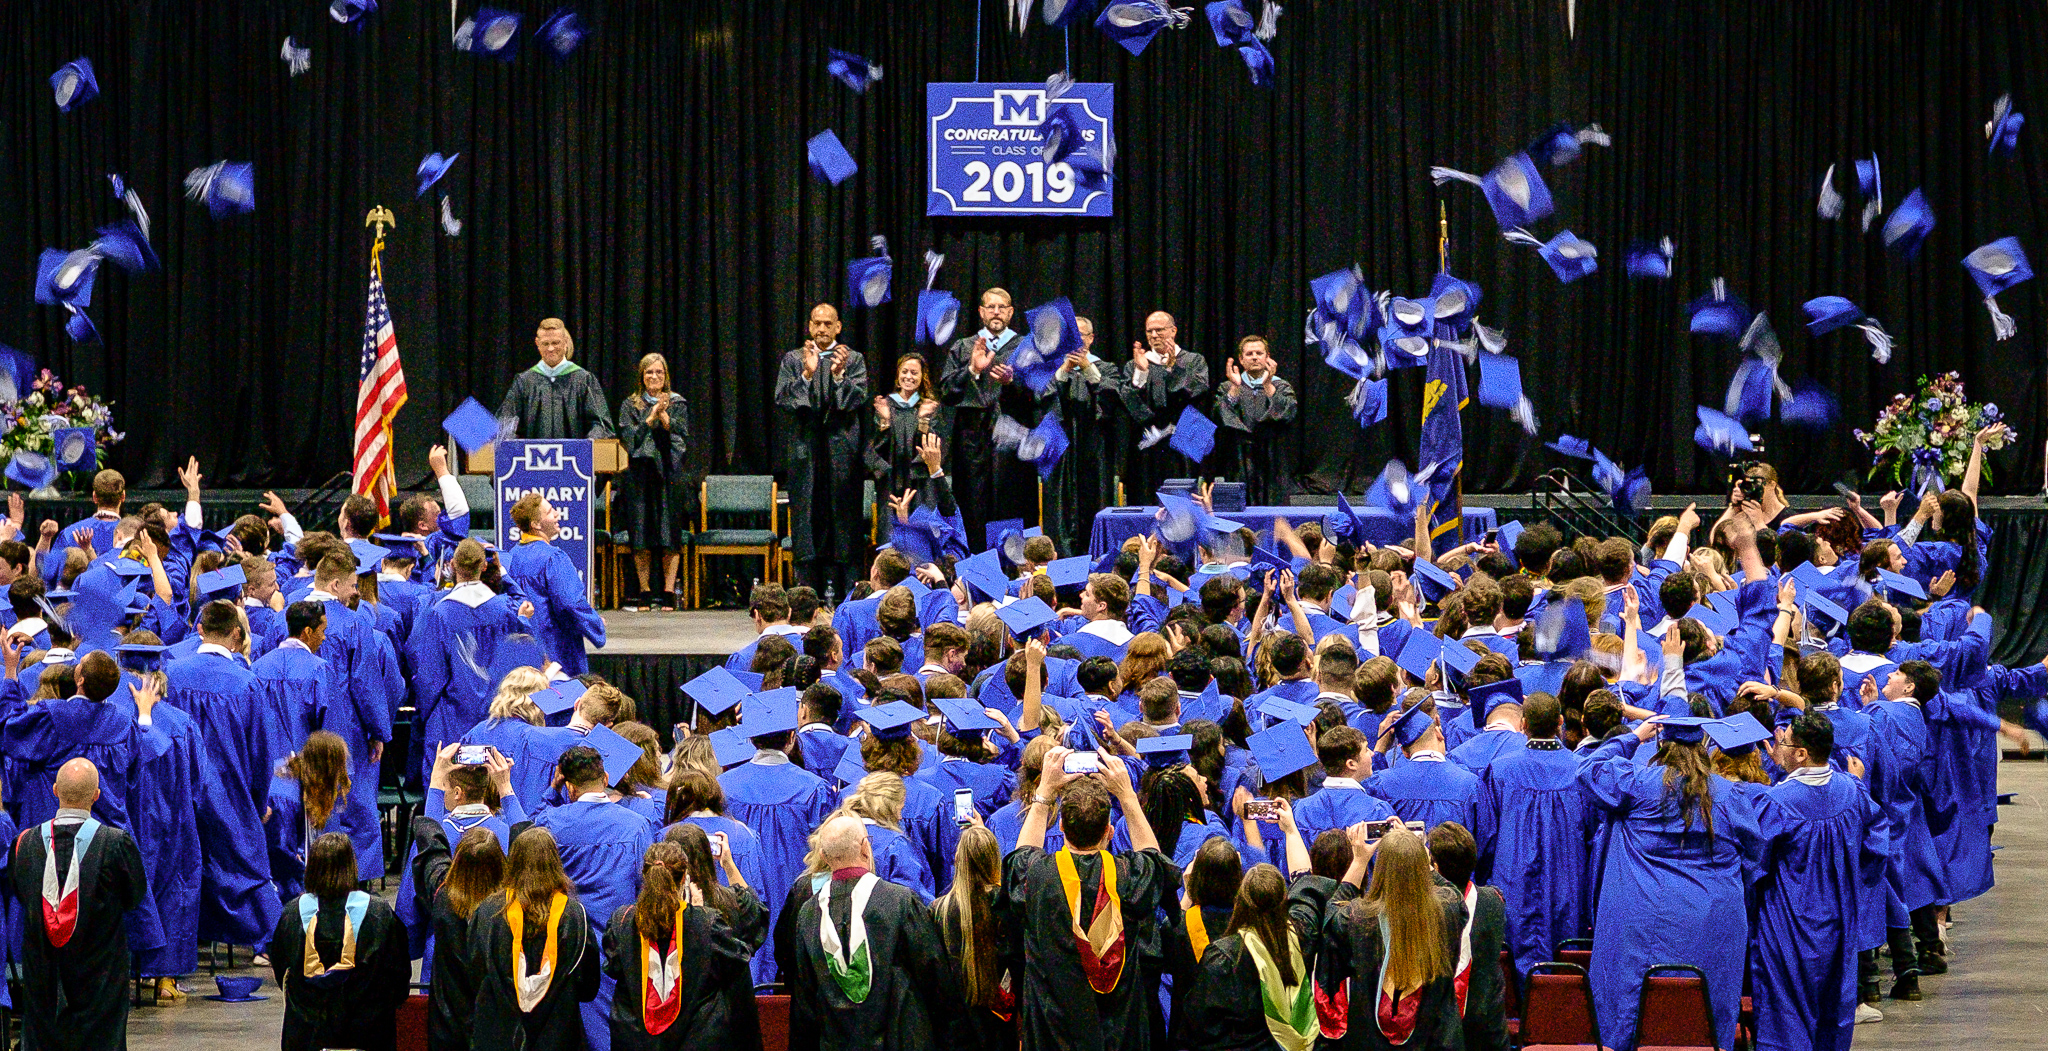 McNary class of 2019 cap toss, Abigail's graduation  [ Fujifilm X-E1, XF50-140mm @106mm, f/4.0, 1/60s, ISO 3200 ]